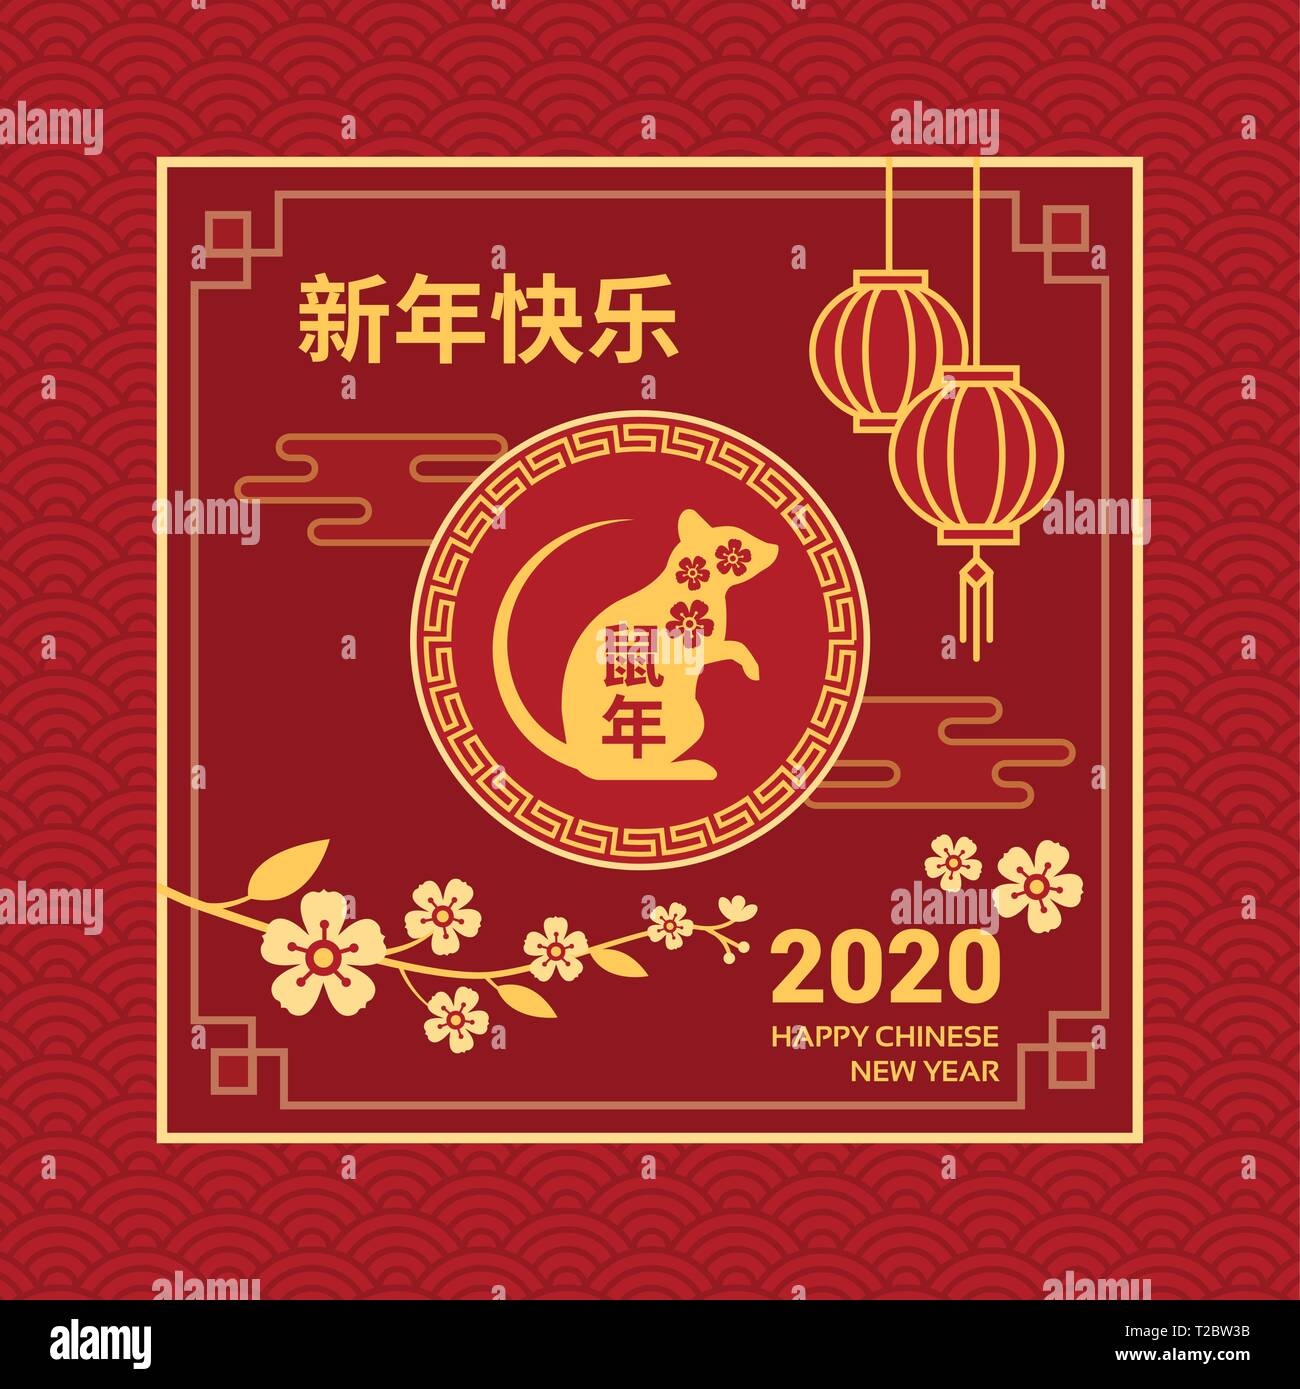 Happy Chinese New Year Card And Social Media Post With Rat Blossom Flowers And Red Lanterns Stock Vector Image Art Alamy